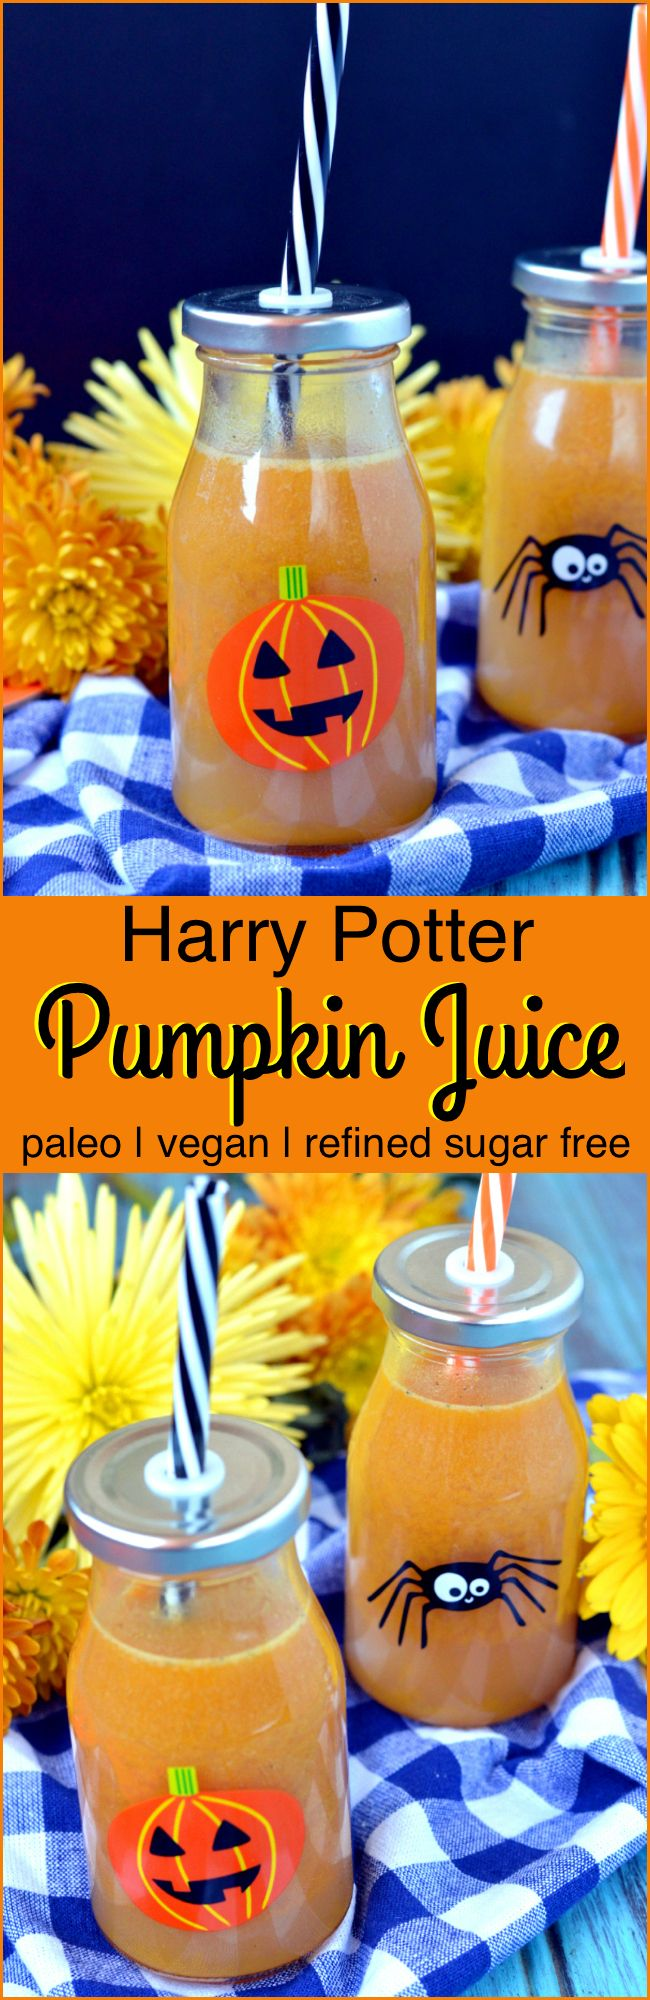 17 Best images about Healthy Halloween | The Organic Dietitian on ...